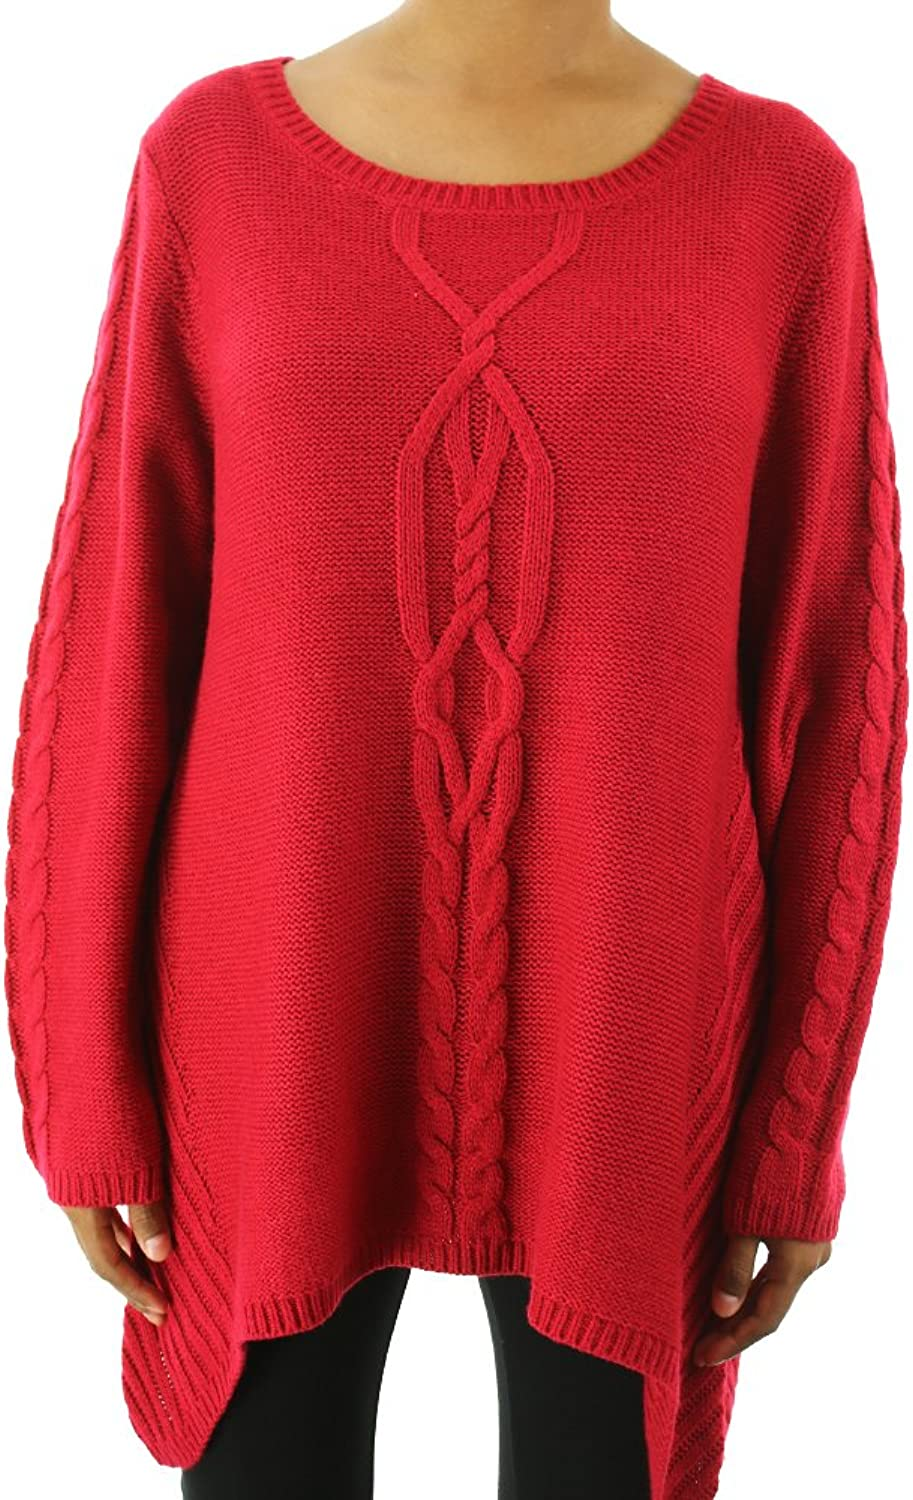 Style & Co. Red MixedKnit Asymmetrical Sweater Xl